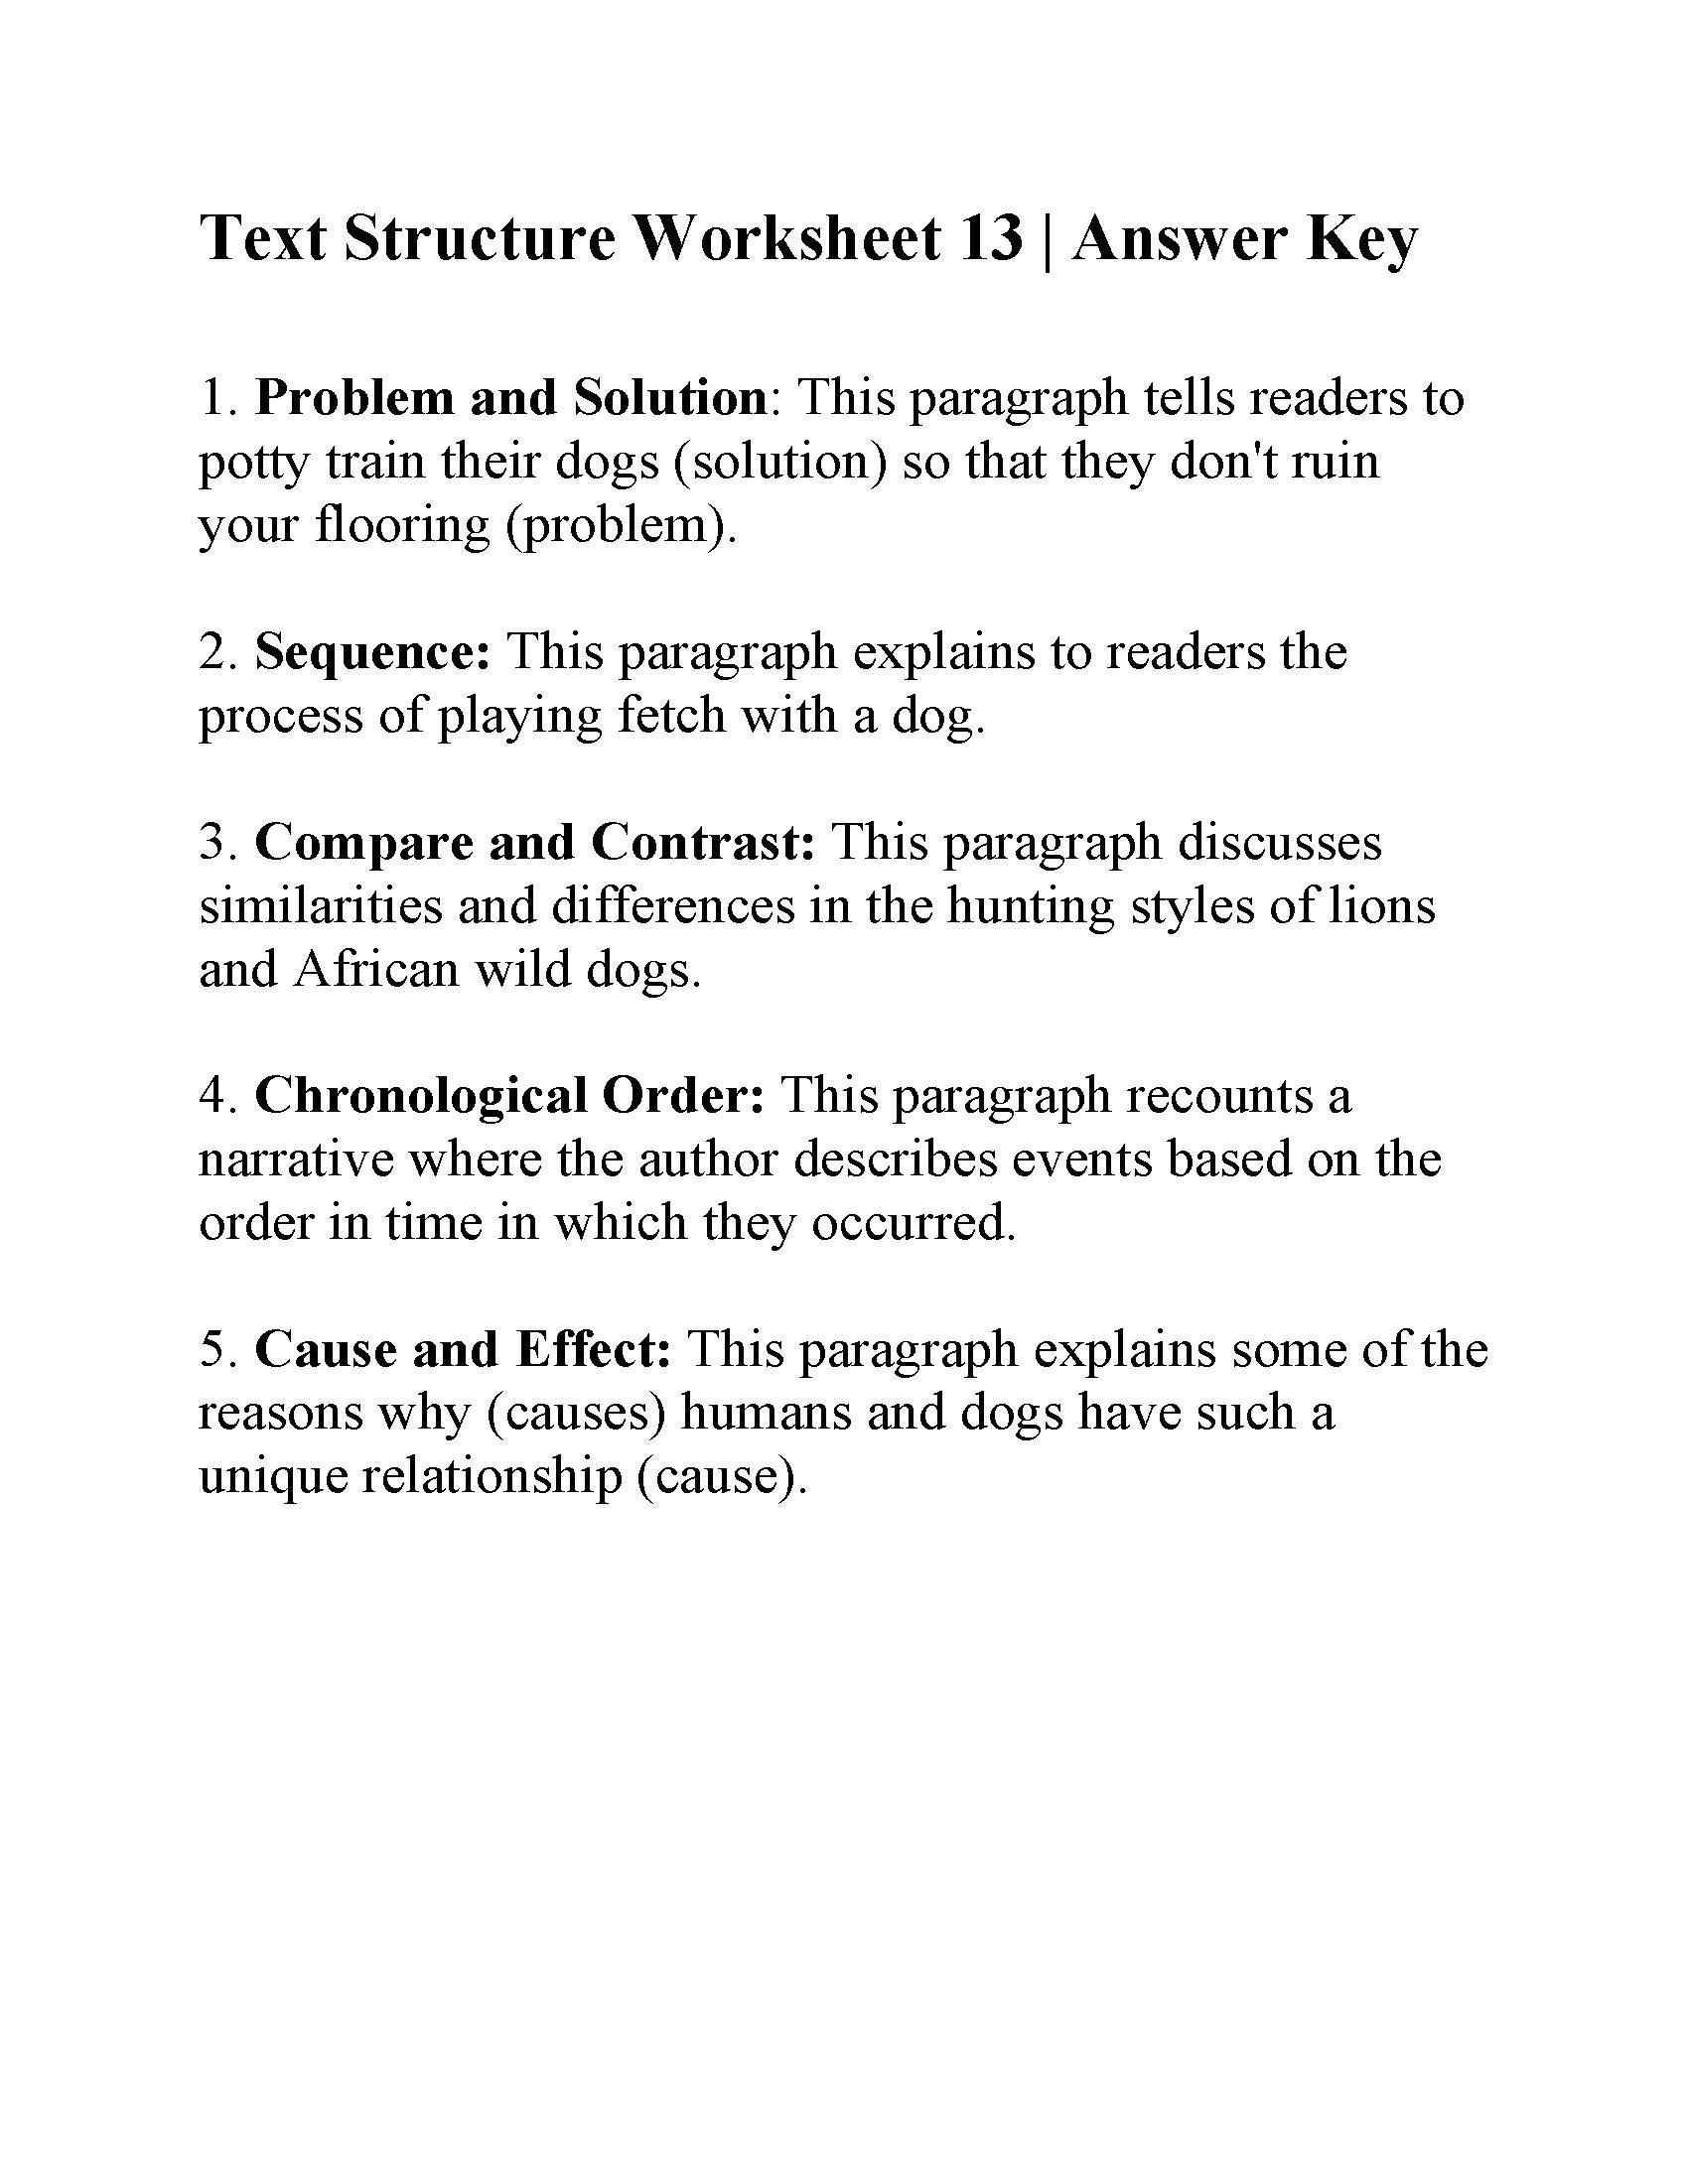 Text Structure Practice Worksheets Text Structure Worksheet Answers Worksheets Matematik Games